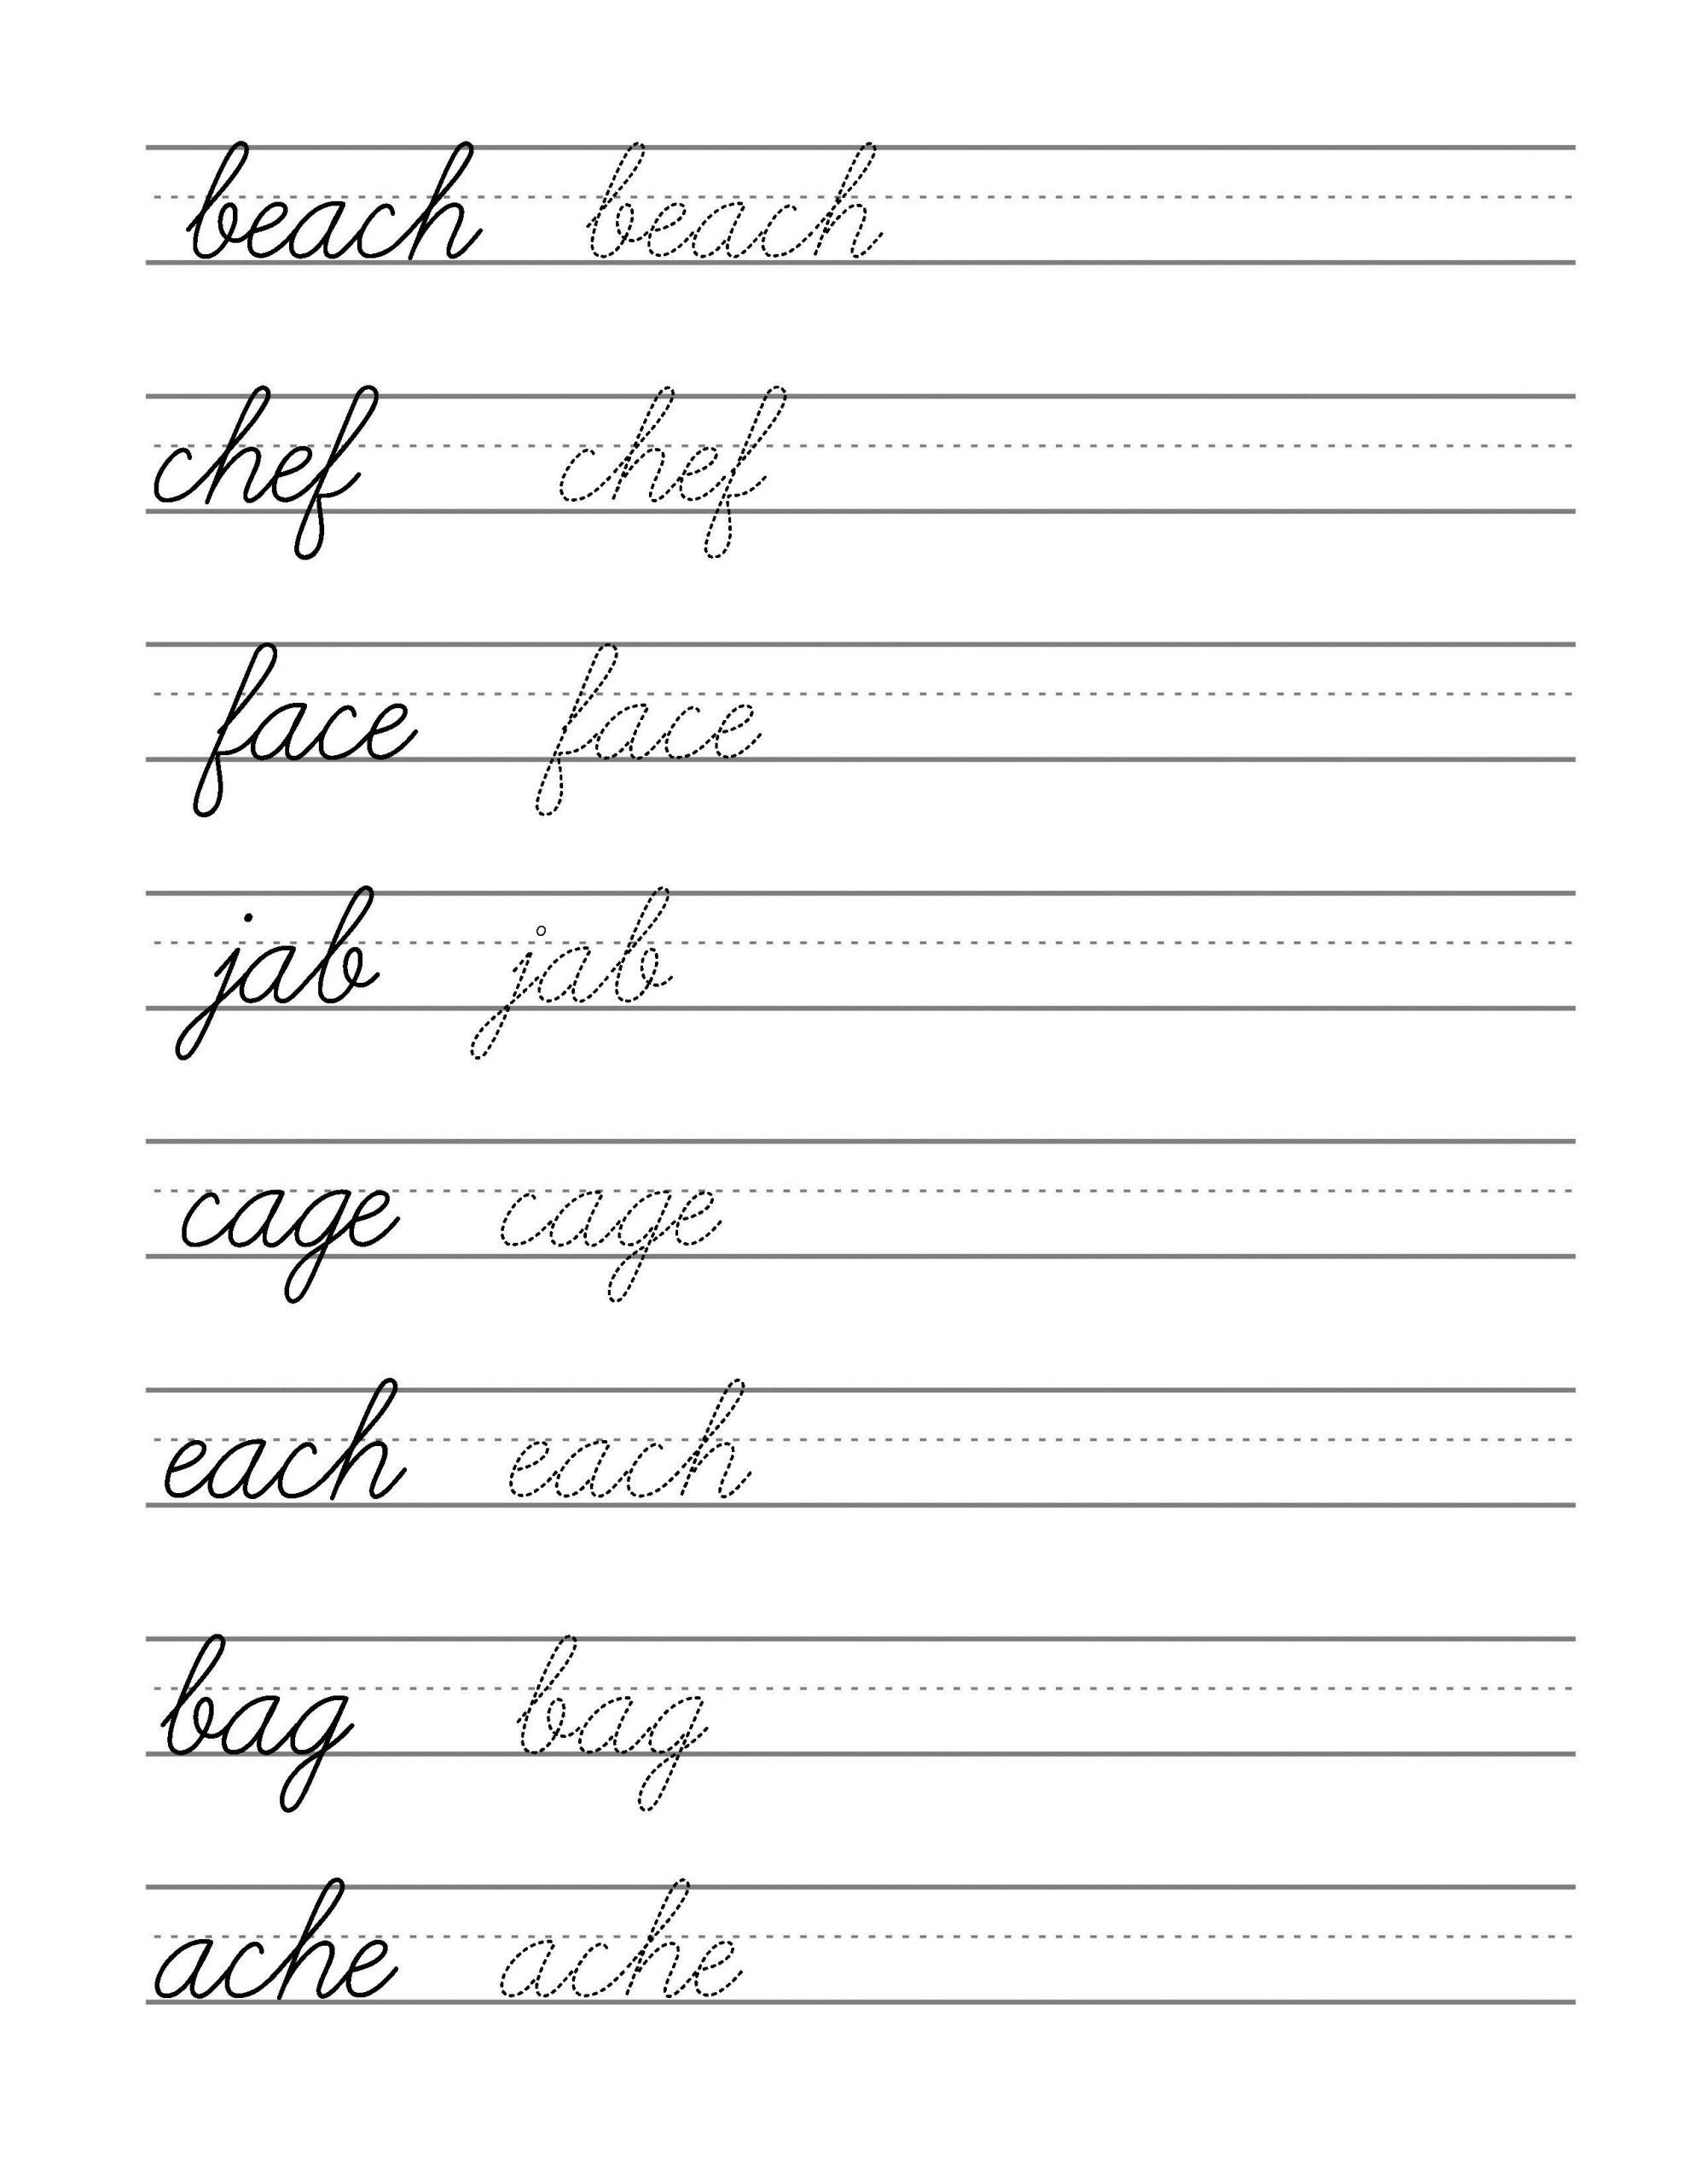 Free Printable Keyboarding Worksheets Free Beginning